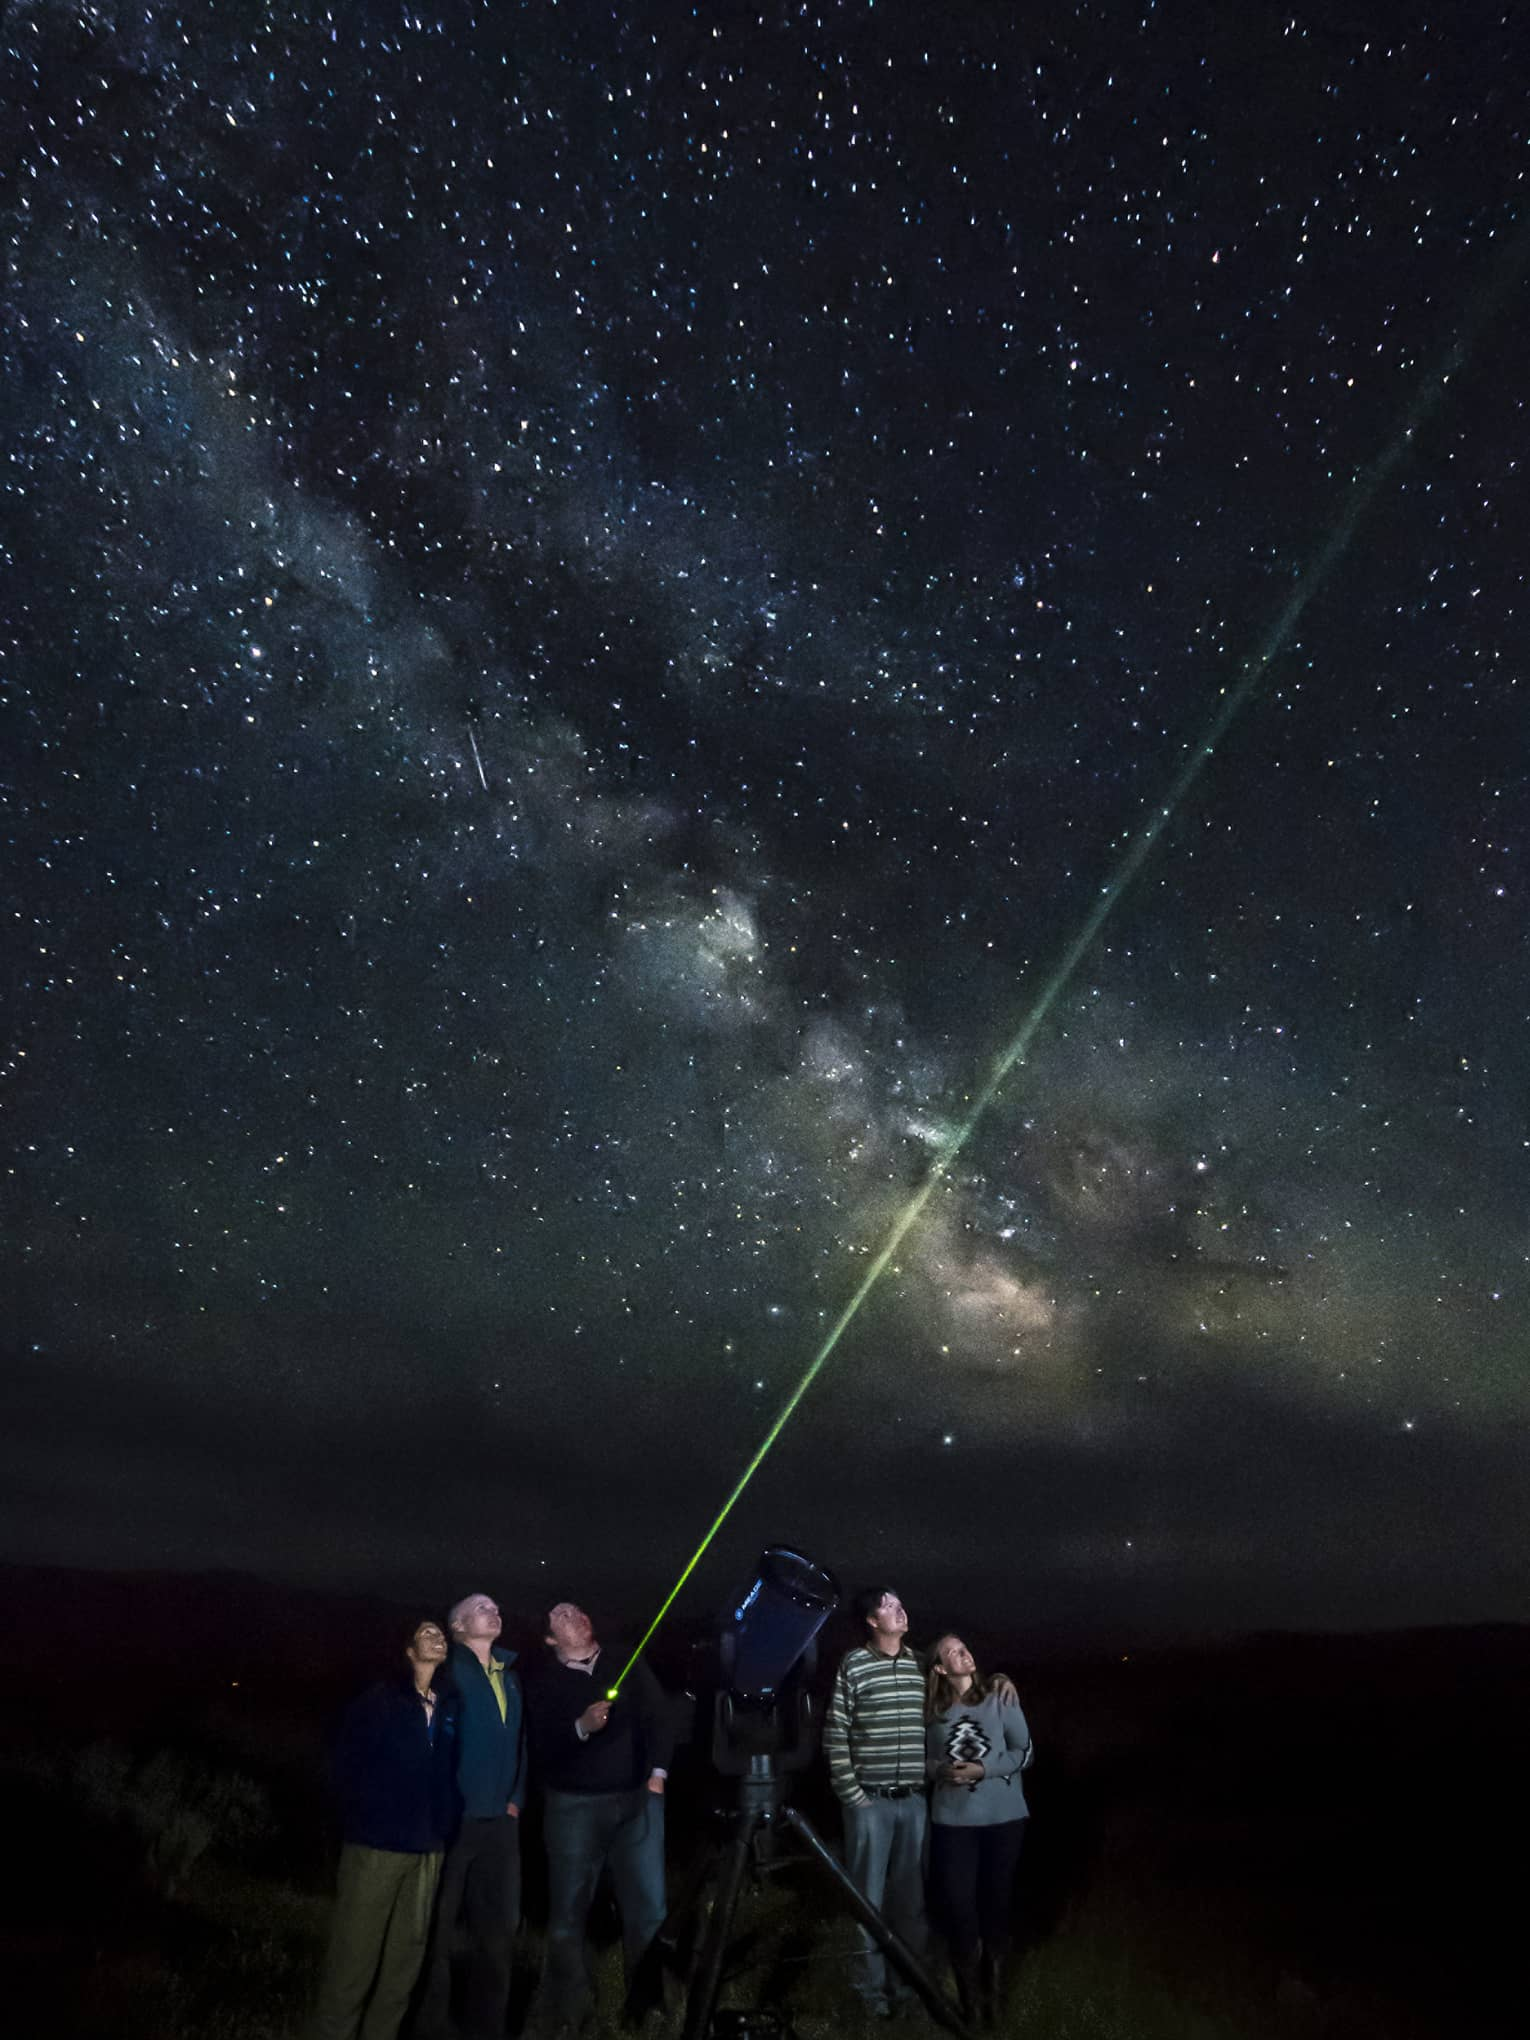 guests stargazing together